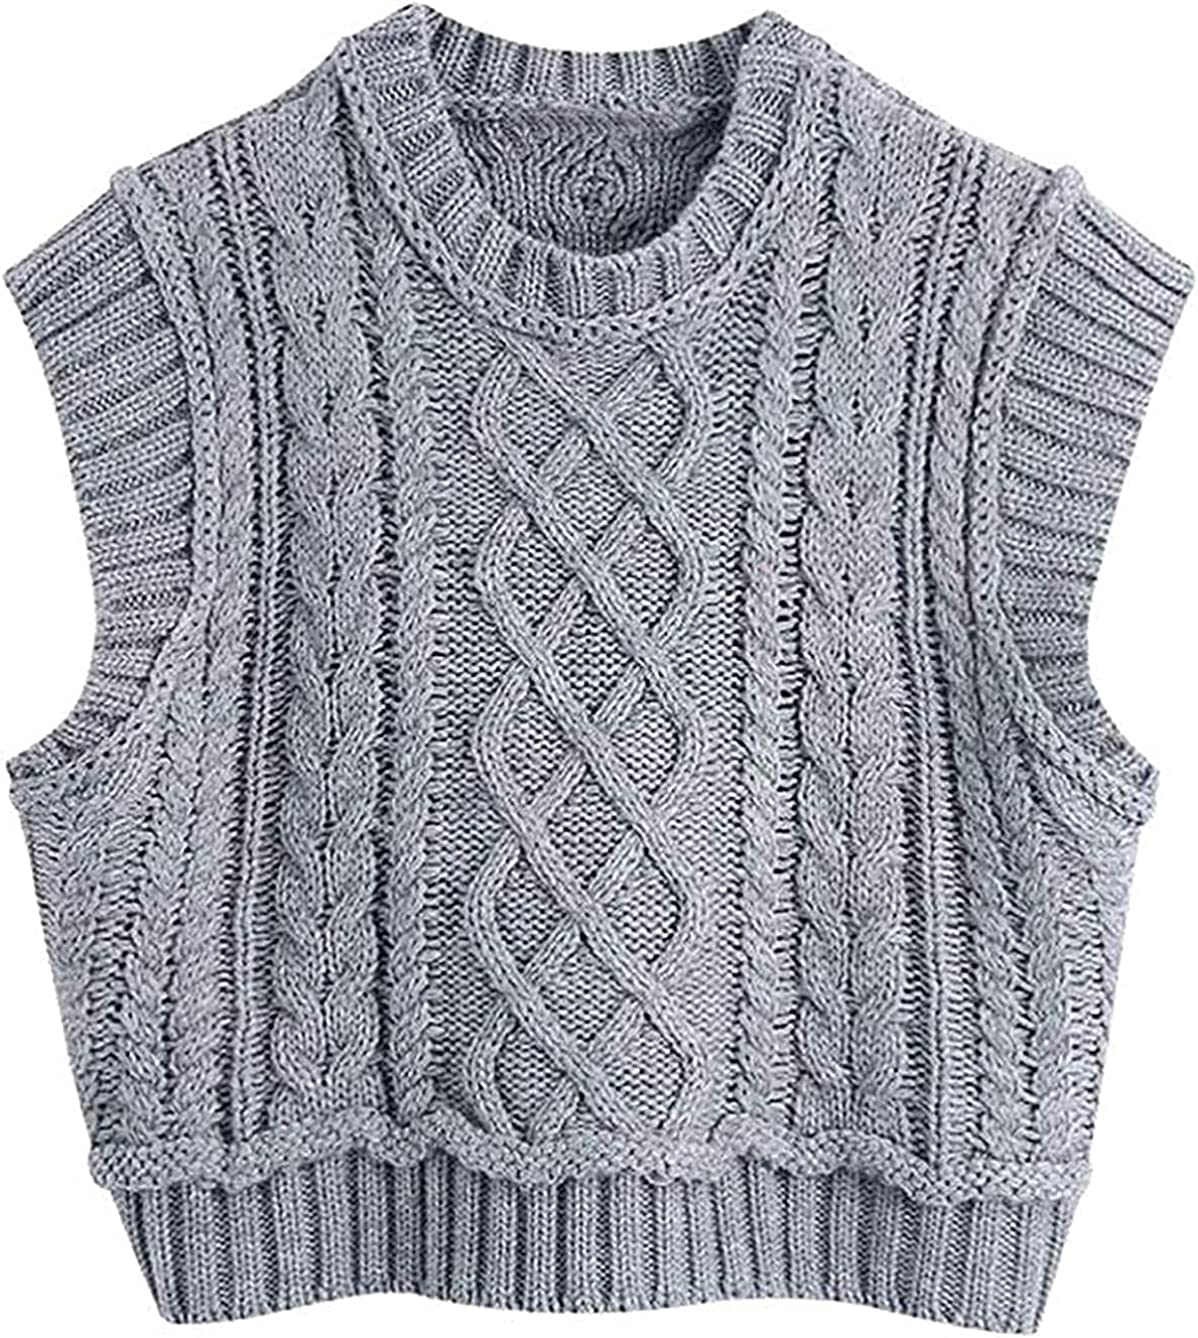 Women Special price for a limited Genuine time Fashion O Neck Solid Female Twist Knitting Sleevel Sweater